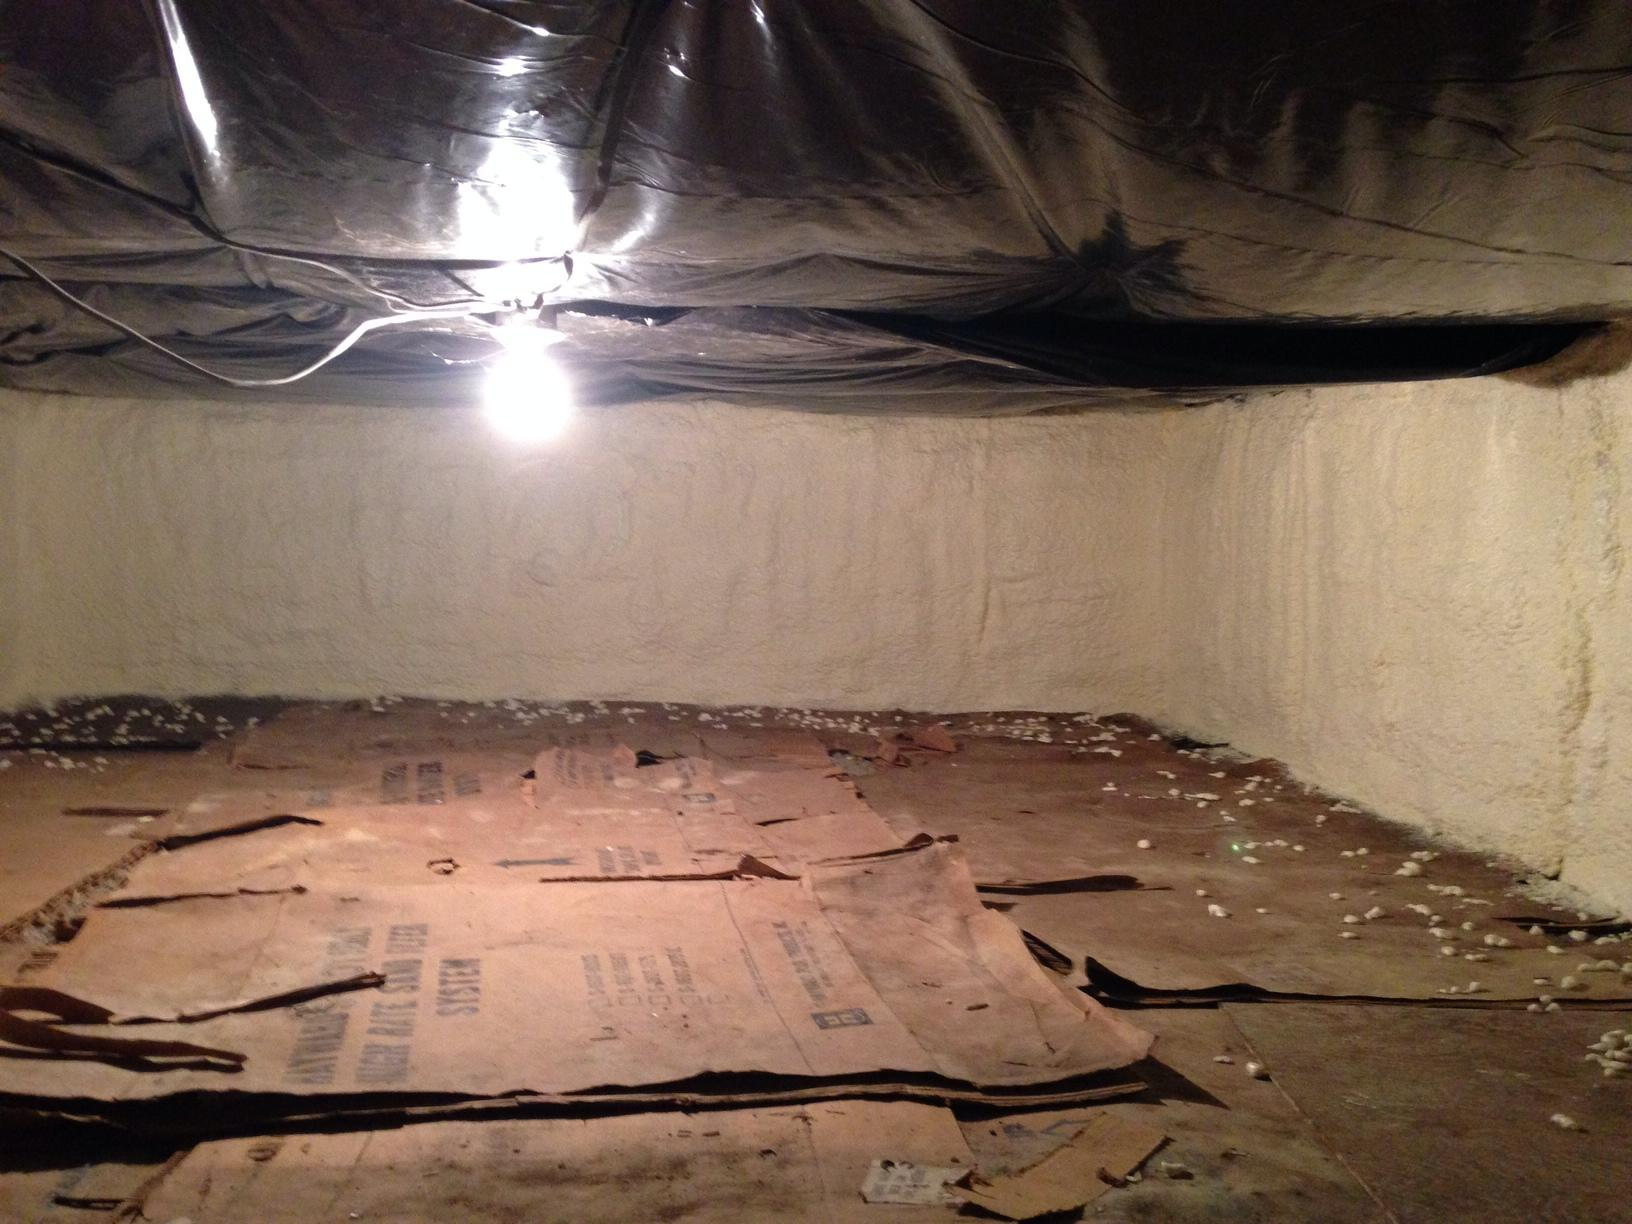 Mt. Morris, NY - Spray Foam Improved Comfort in Living Space Above Crawl Space - After Photo